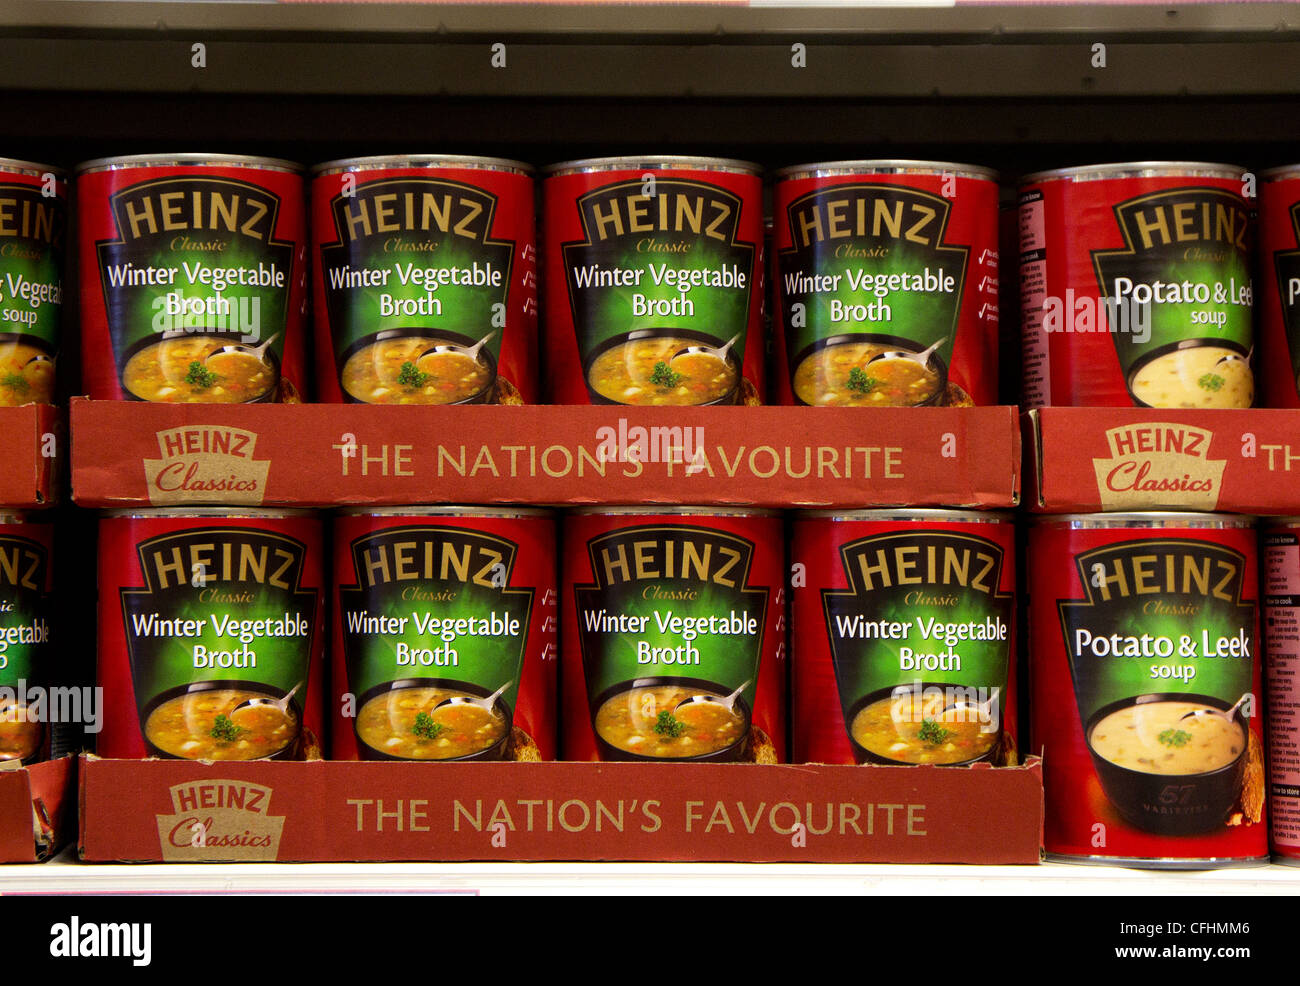 Tins of Heinz soup on a store shelf, UK - Stock Image